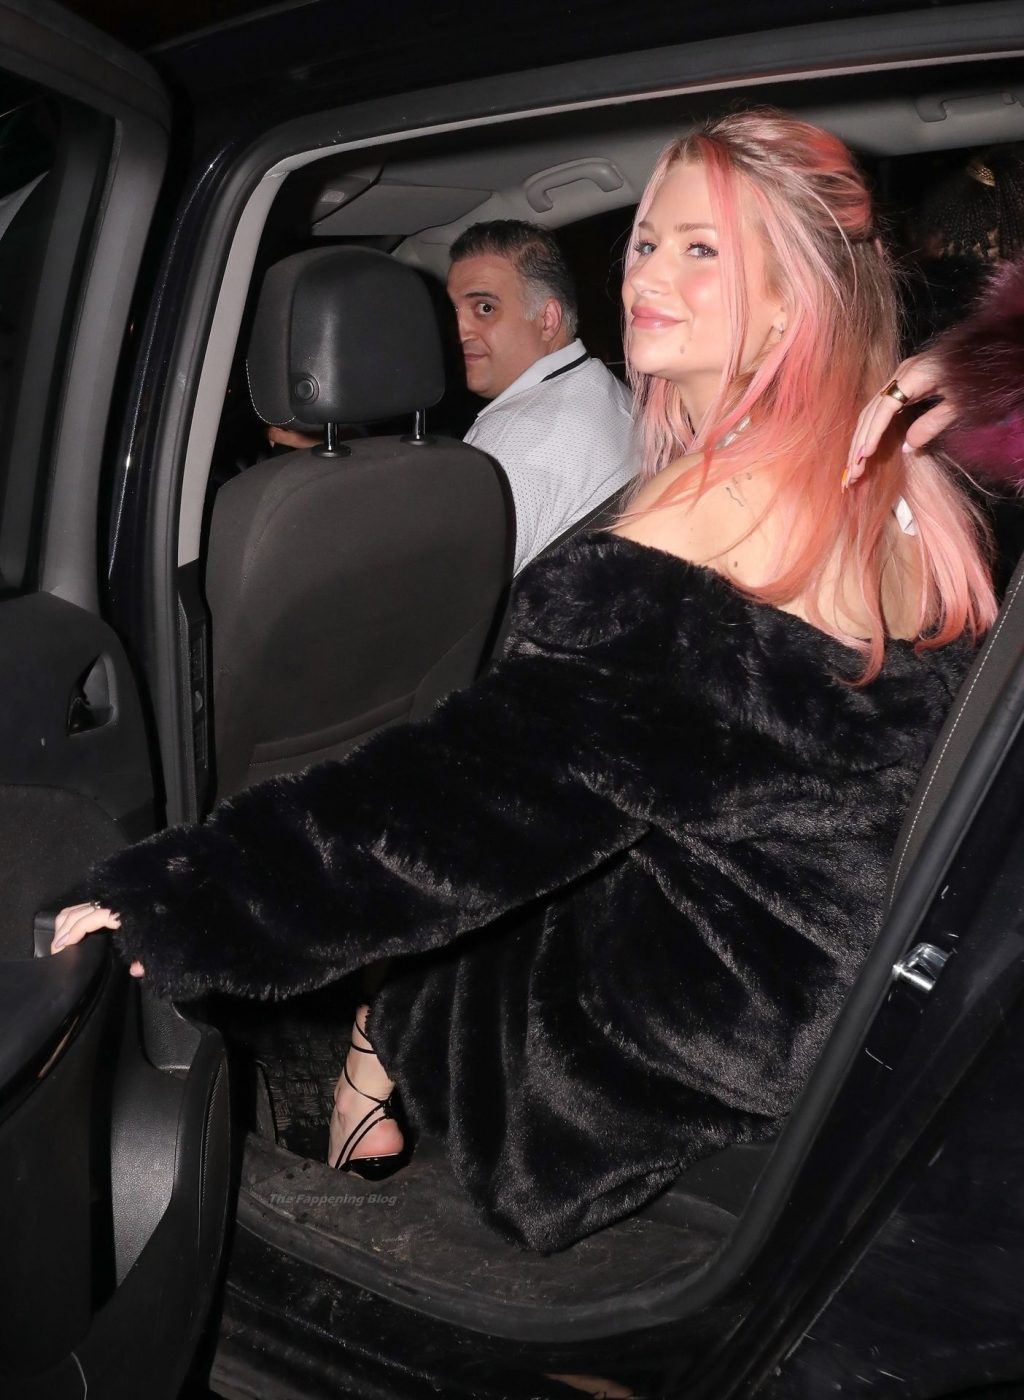 Lottie Moss Goes Braless and Flashes Her Boobs While Heading Out for Dinner in London (50 Photos)